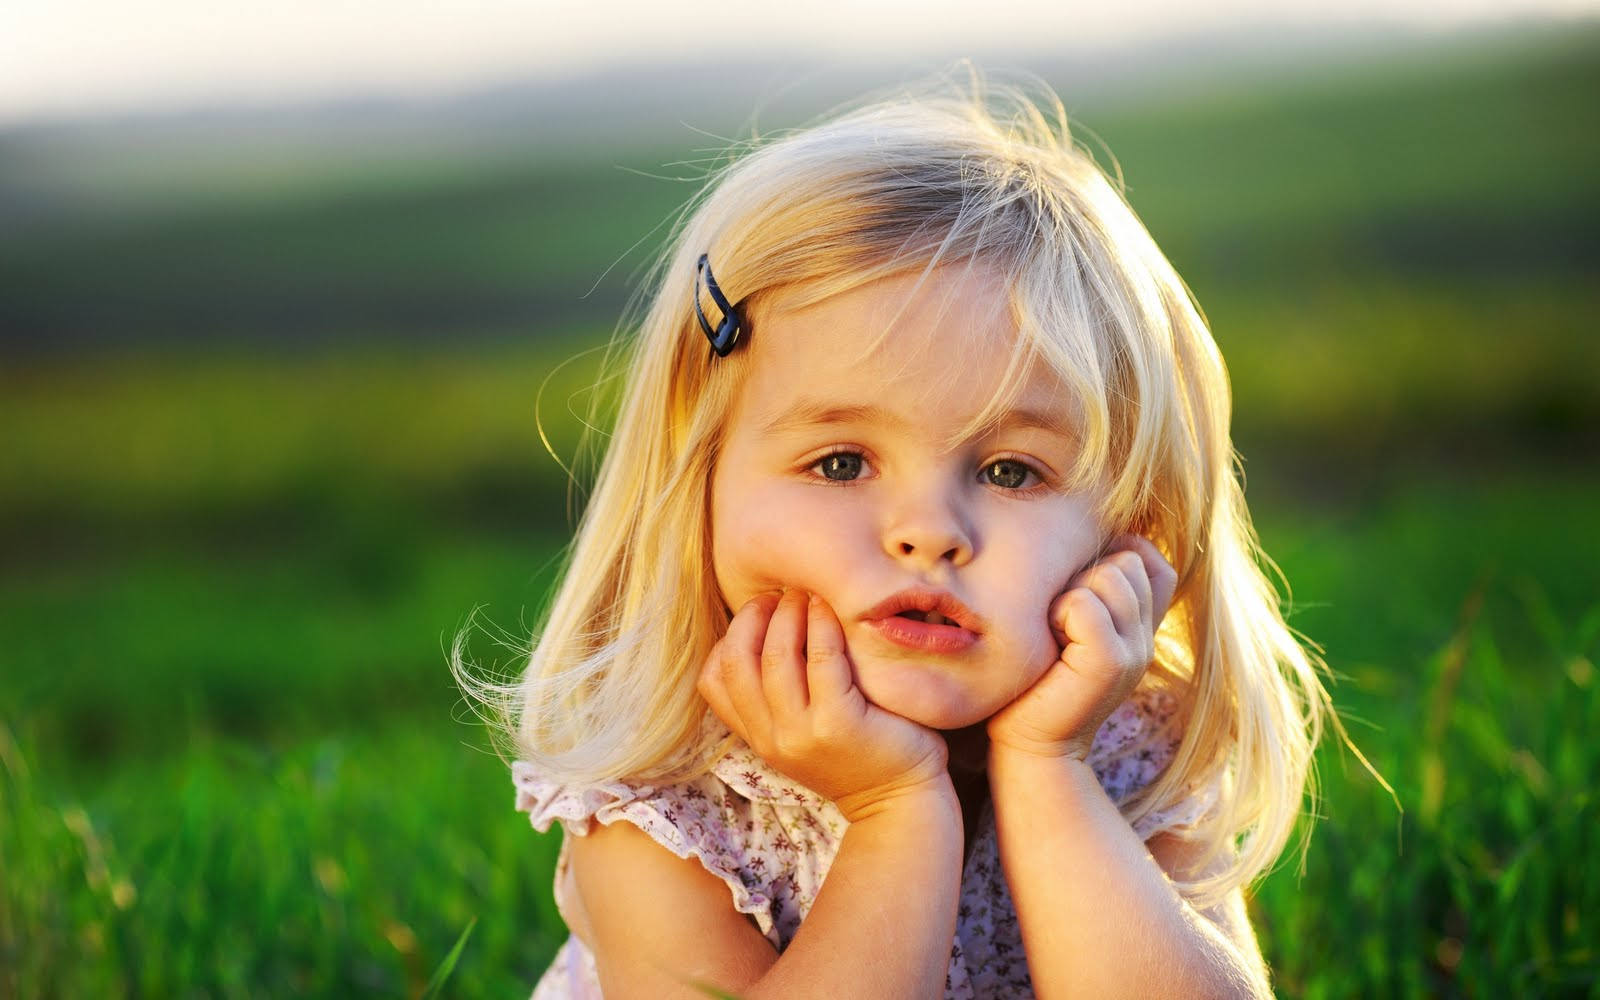 Tags   Little Baby HD Wallpapers, New Cute Girl HD Wallpapers Wallpaper